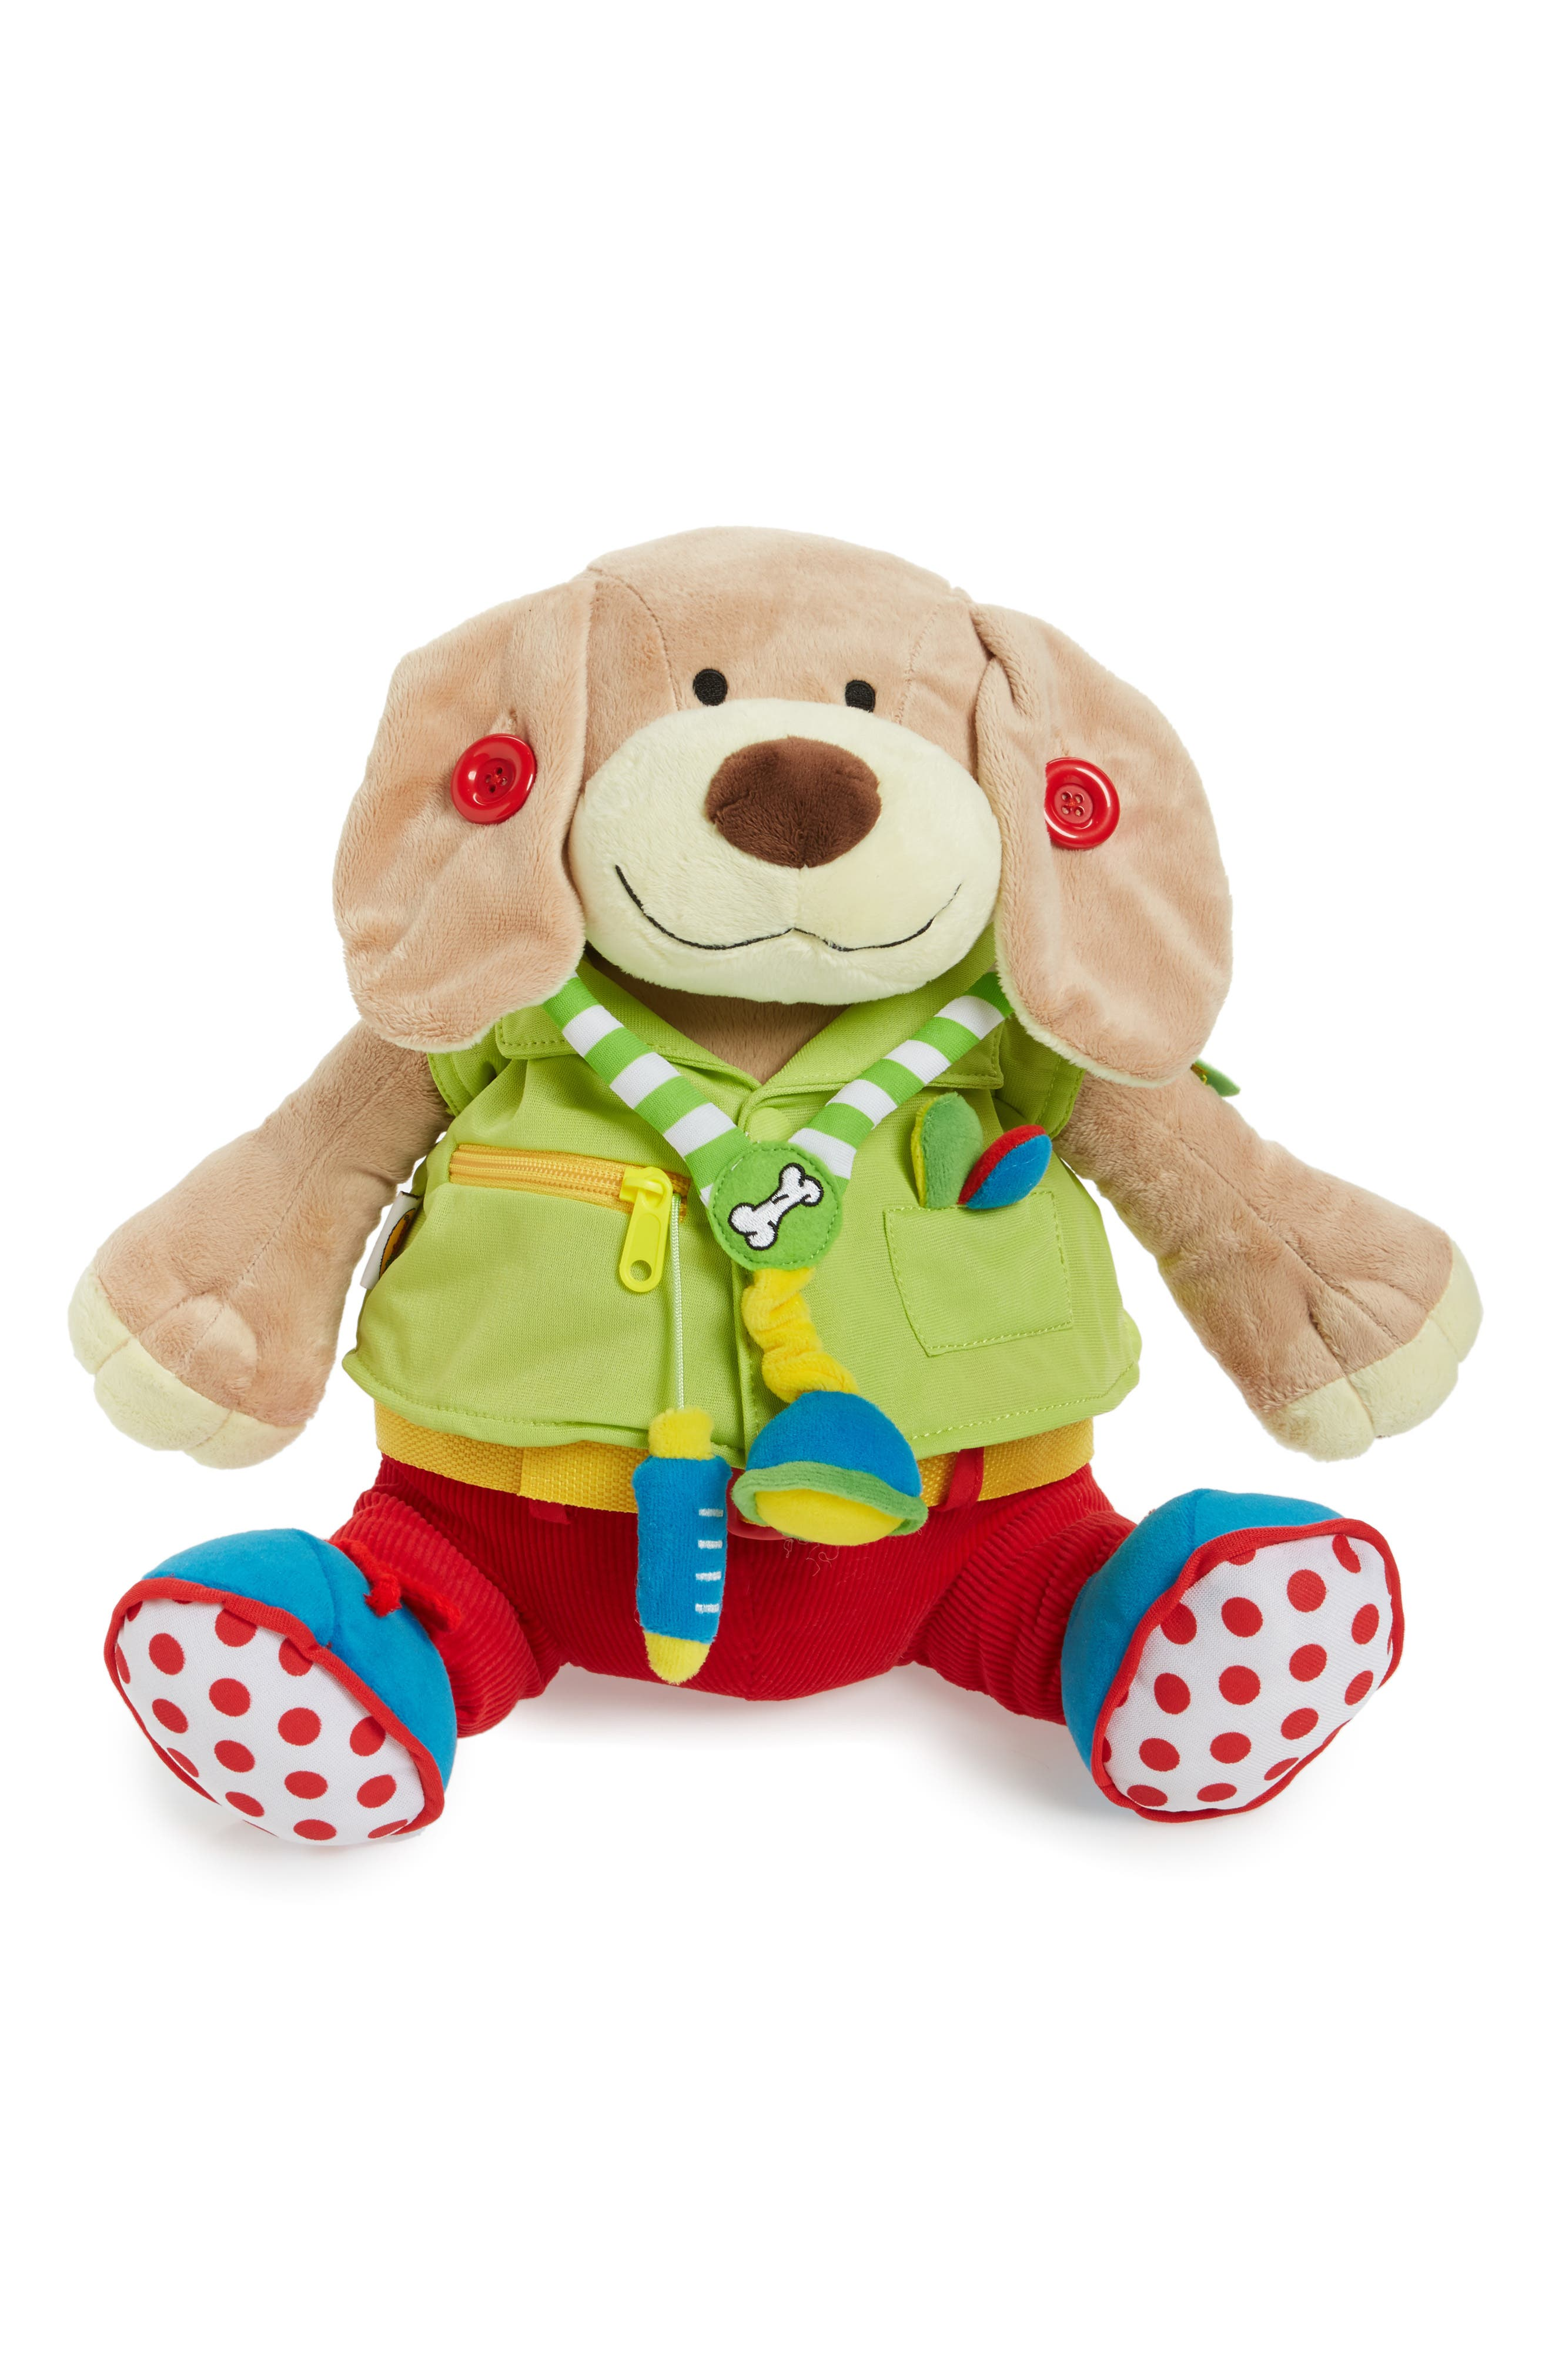 Dr Pooch Stuffed Activity Toy,                             Main thumbnail 1, color,                             300